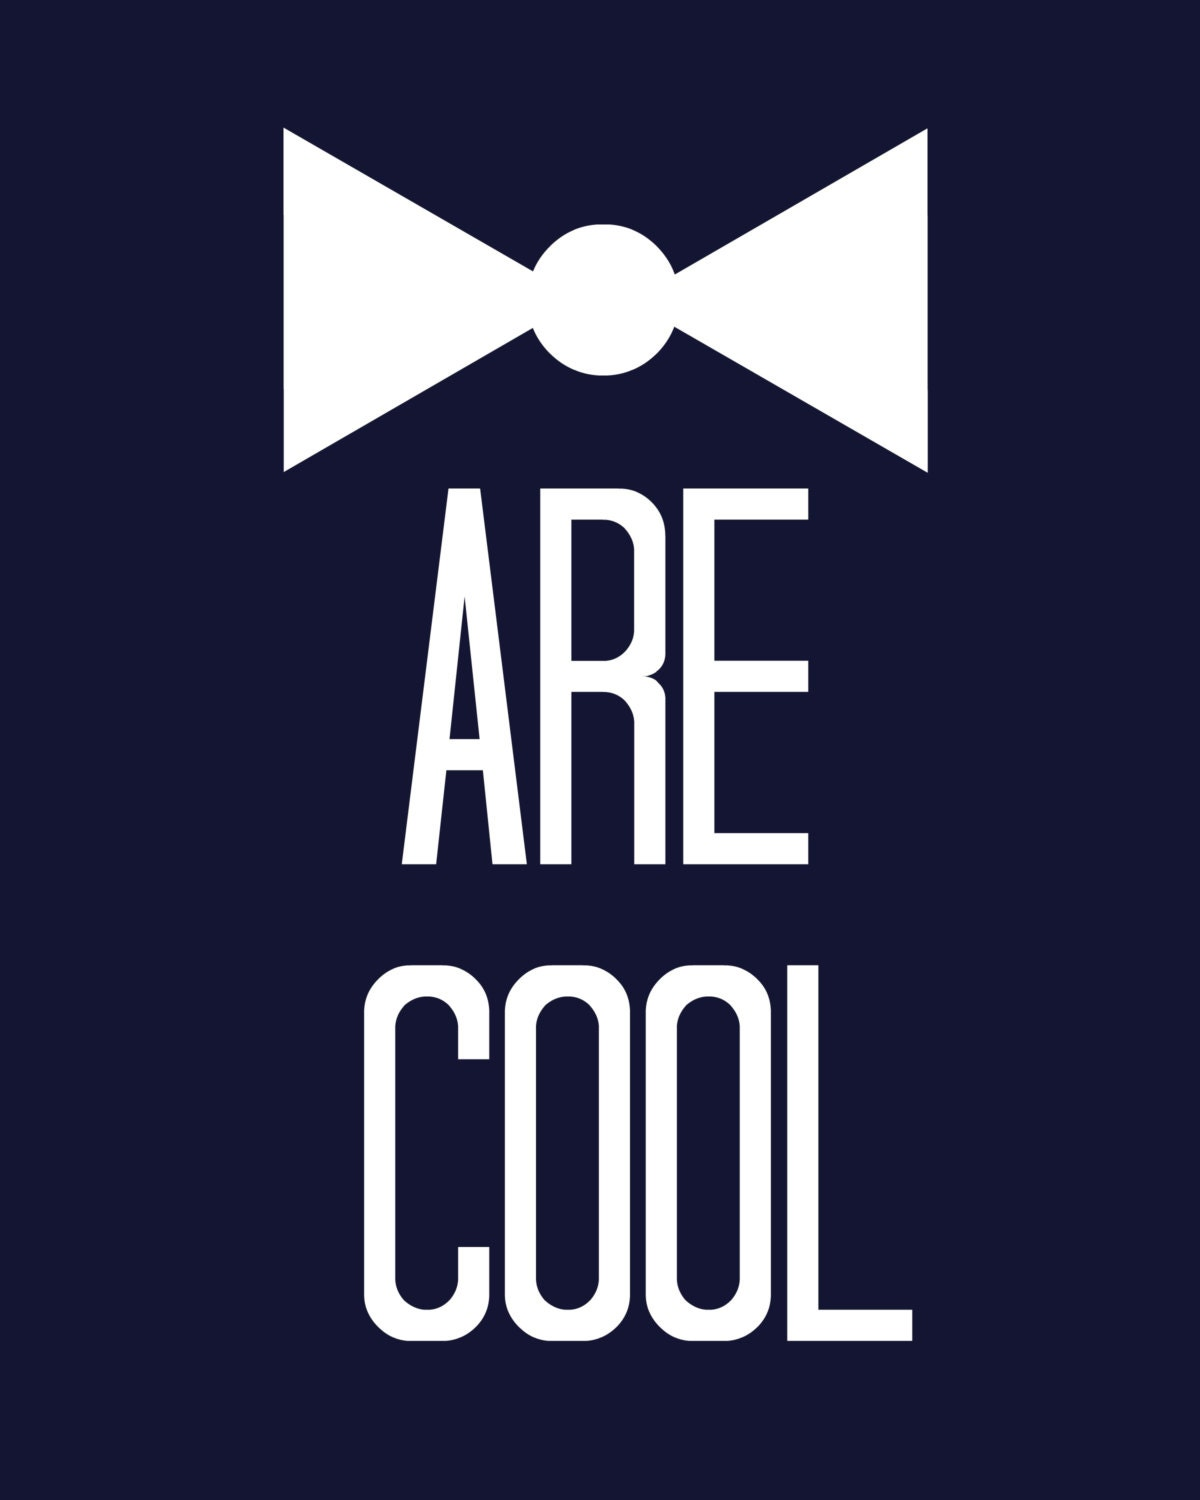 Bow Ties Are Cool Doctor Who 8 x 10 Digital Art Print Download